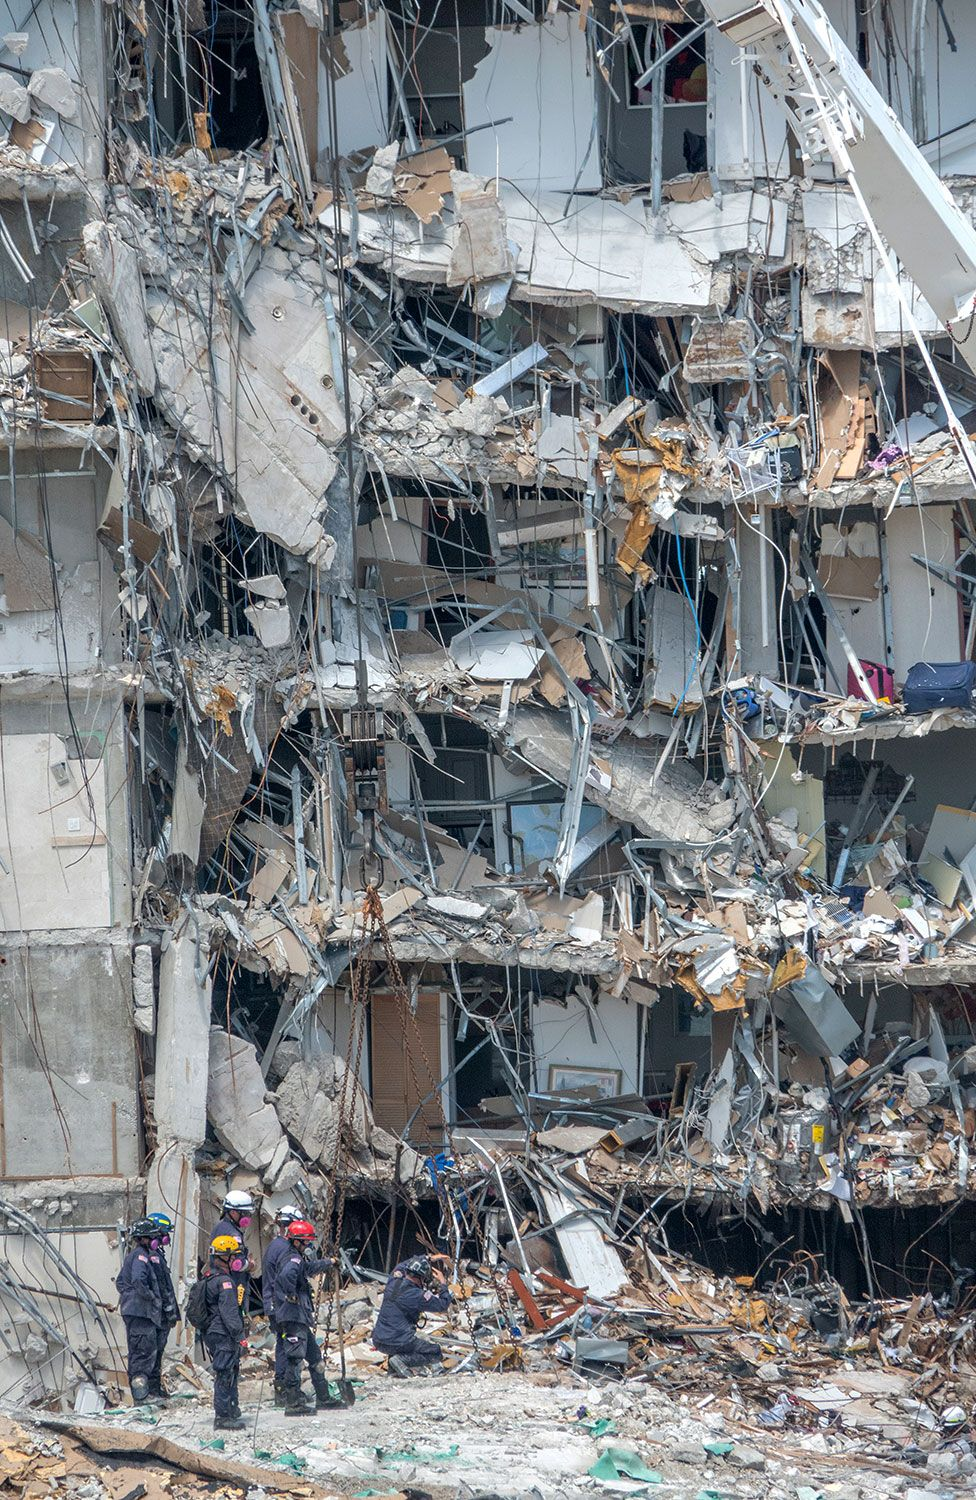 Rescue teams stand amid rubble of collapse building